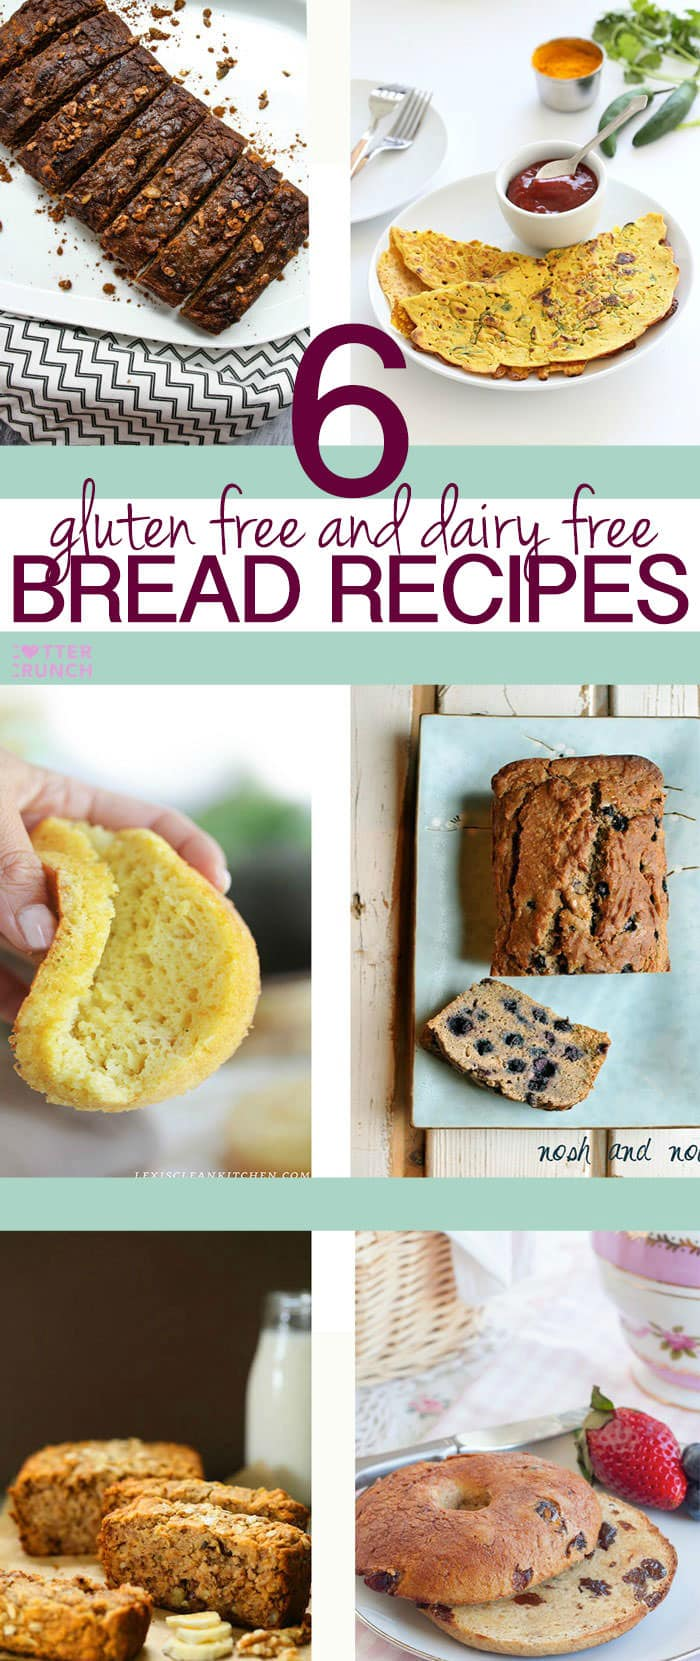 Looking for an allergy friendly bread recipe that actually tastes good? Here's a great round up of 6 healthy gluten free and dairy free bread recipes, bagels, and pancakes!